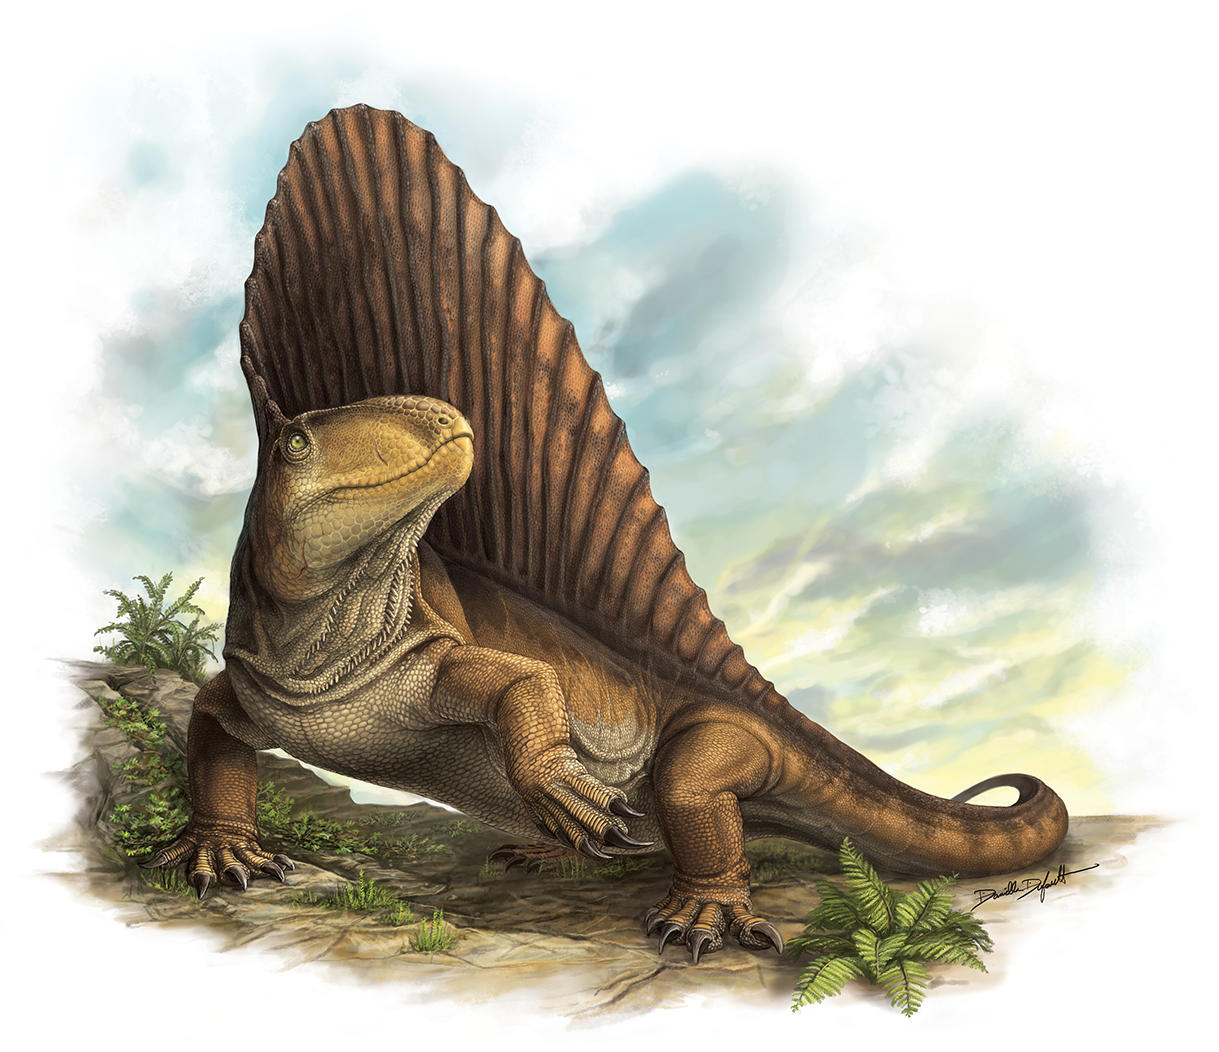 The sail-backed non-mammalian synapsid Dimetrodon